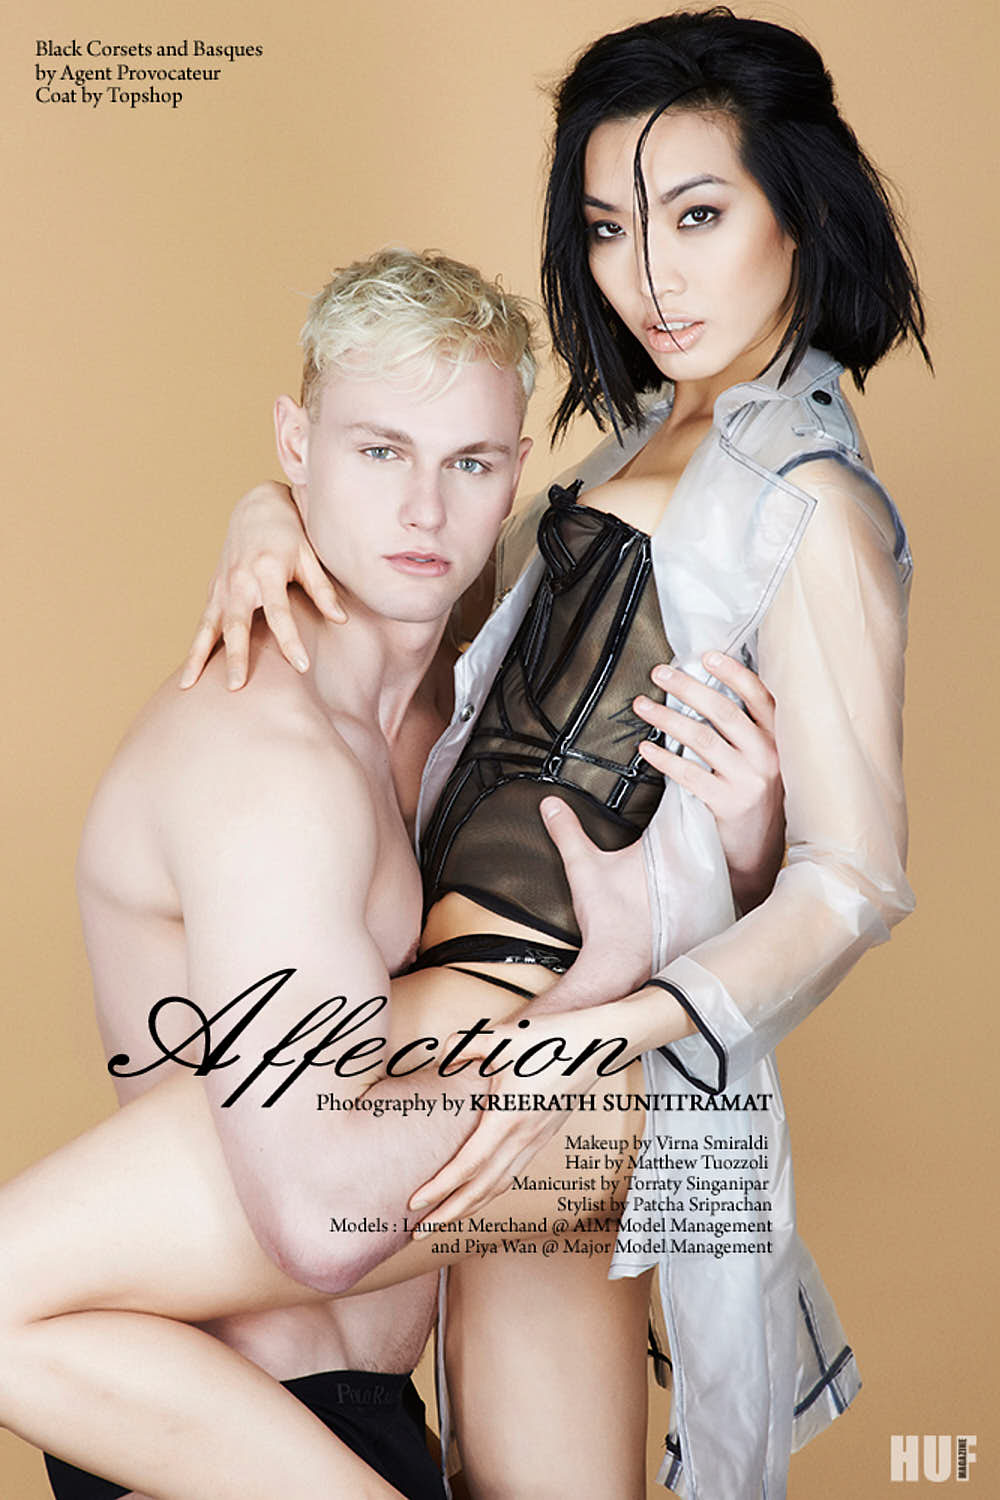 Affection_KreerathSunittramat_HUF-Mag_01 copy.jpg